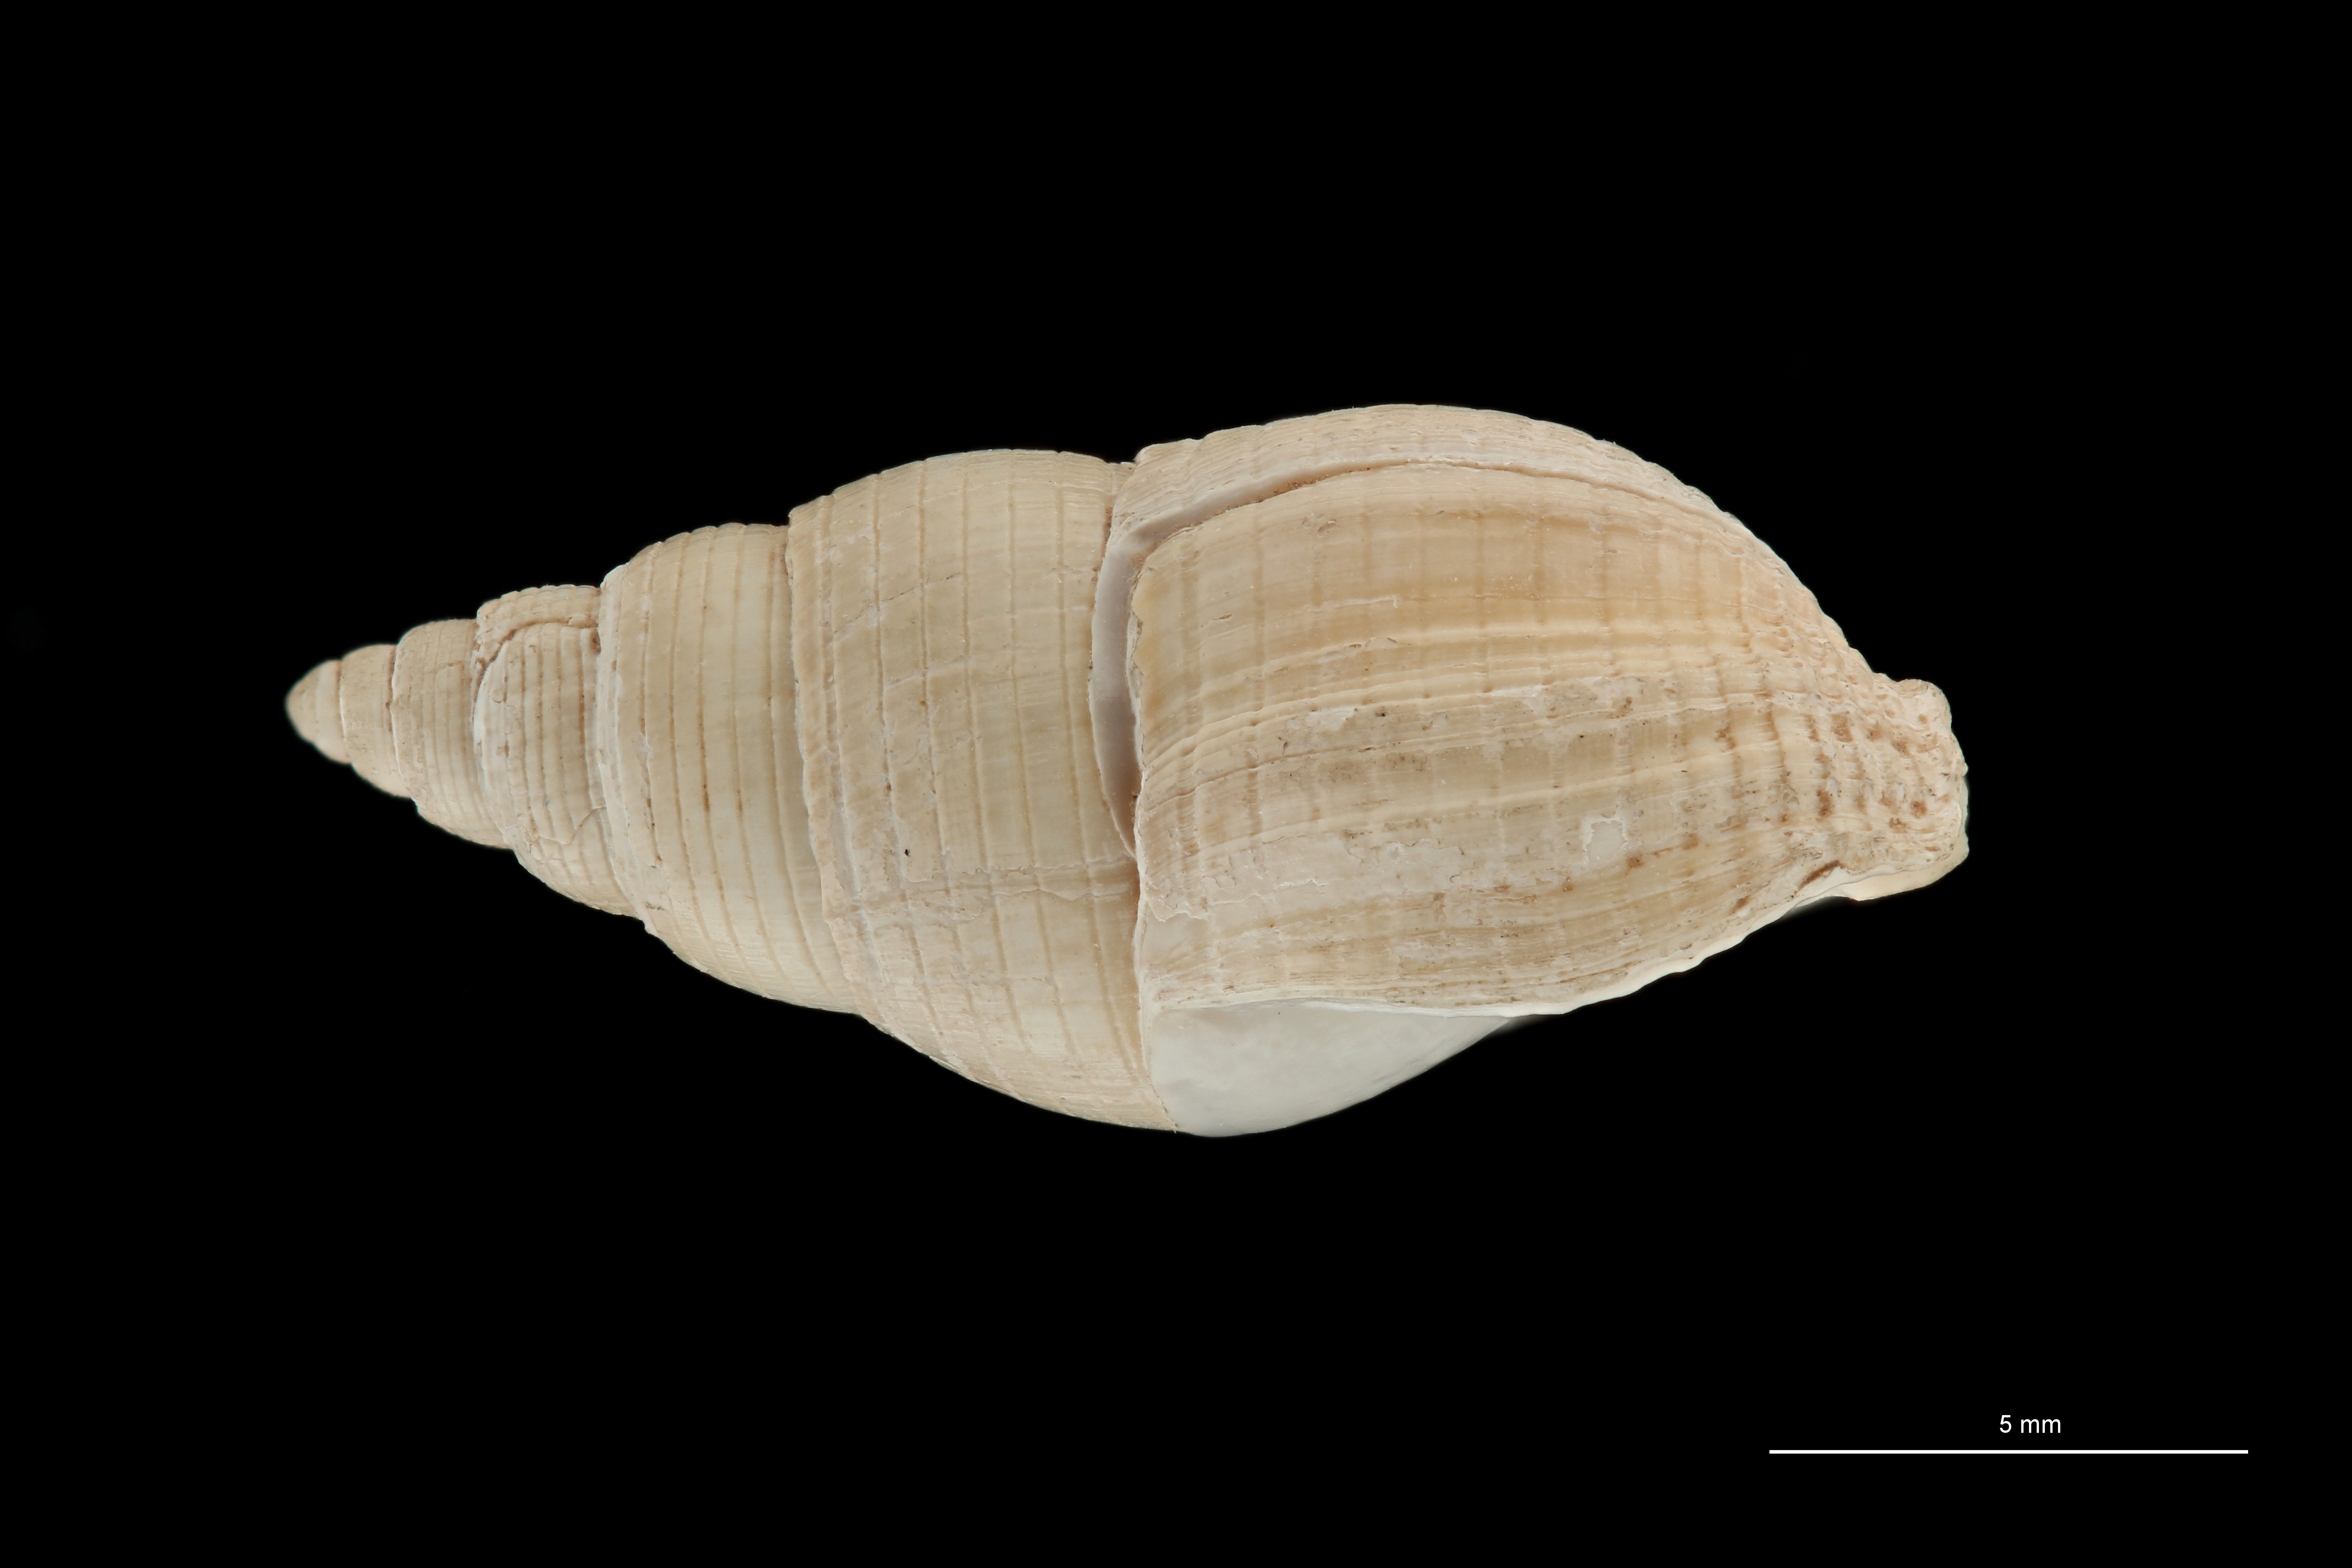 BE-RBINS-INV HYPOTYPE MT 236 Nassarius cabrierensis ovoideus LATERAL ZS PMax Scaled.jpg